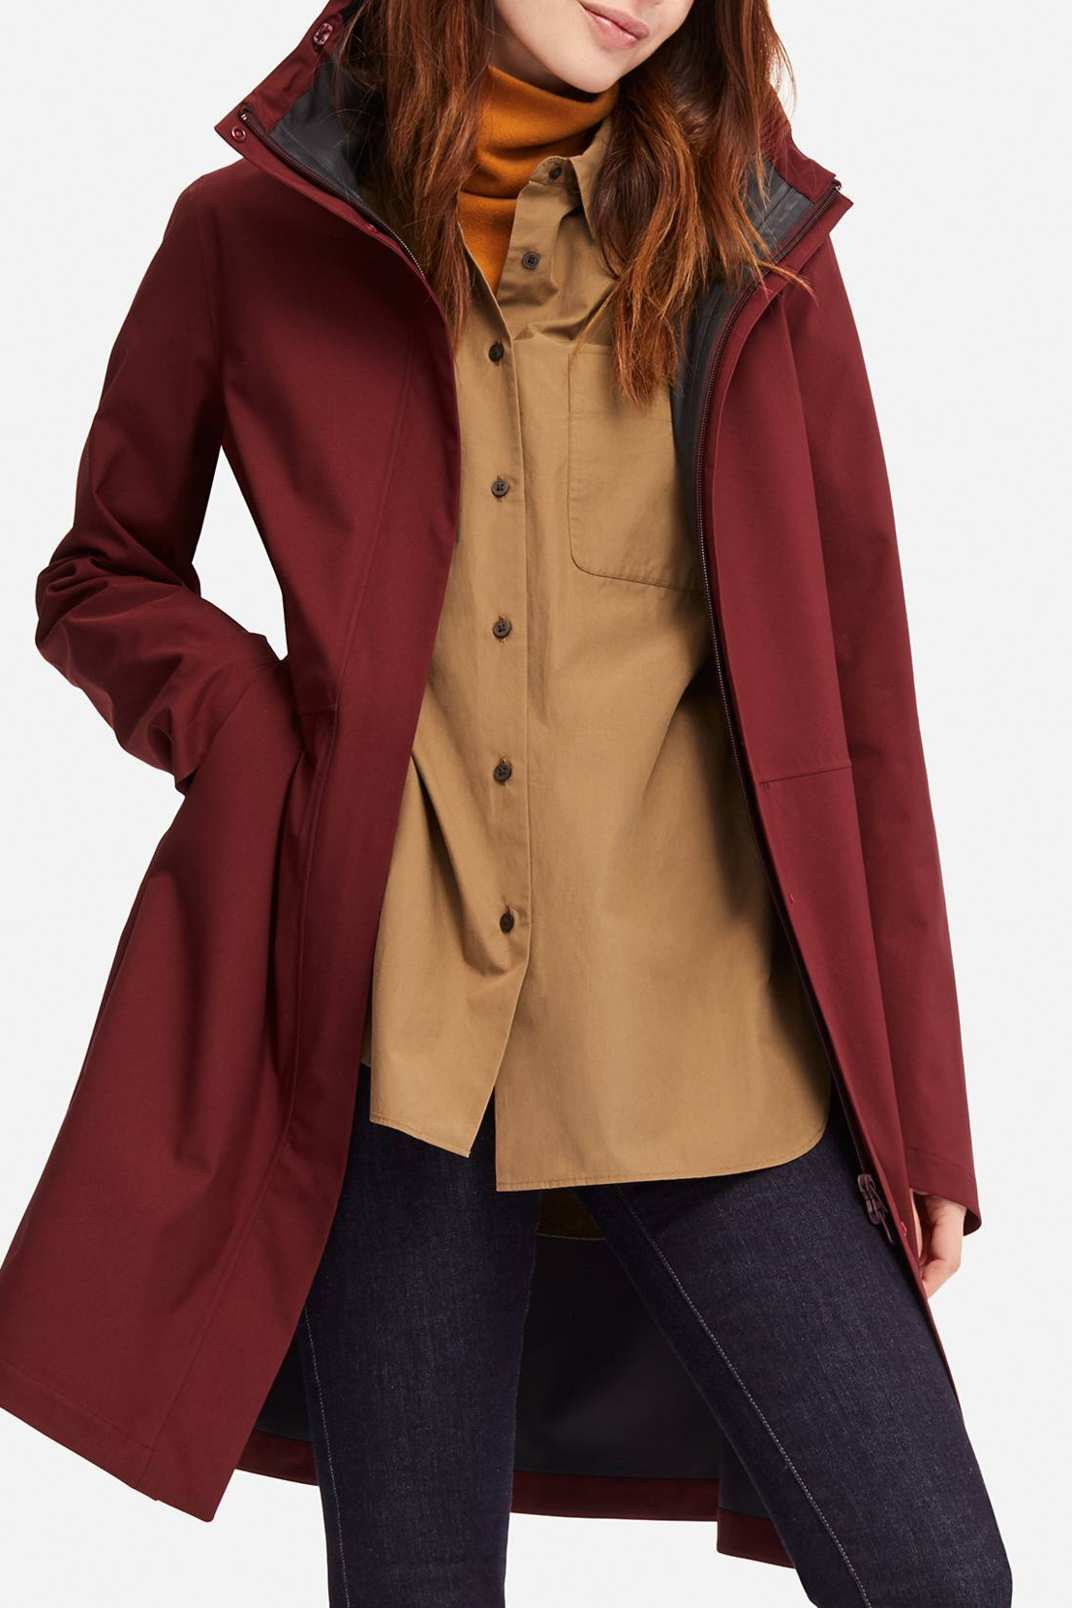 Uniqlo Women's Blocktech Coat